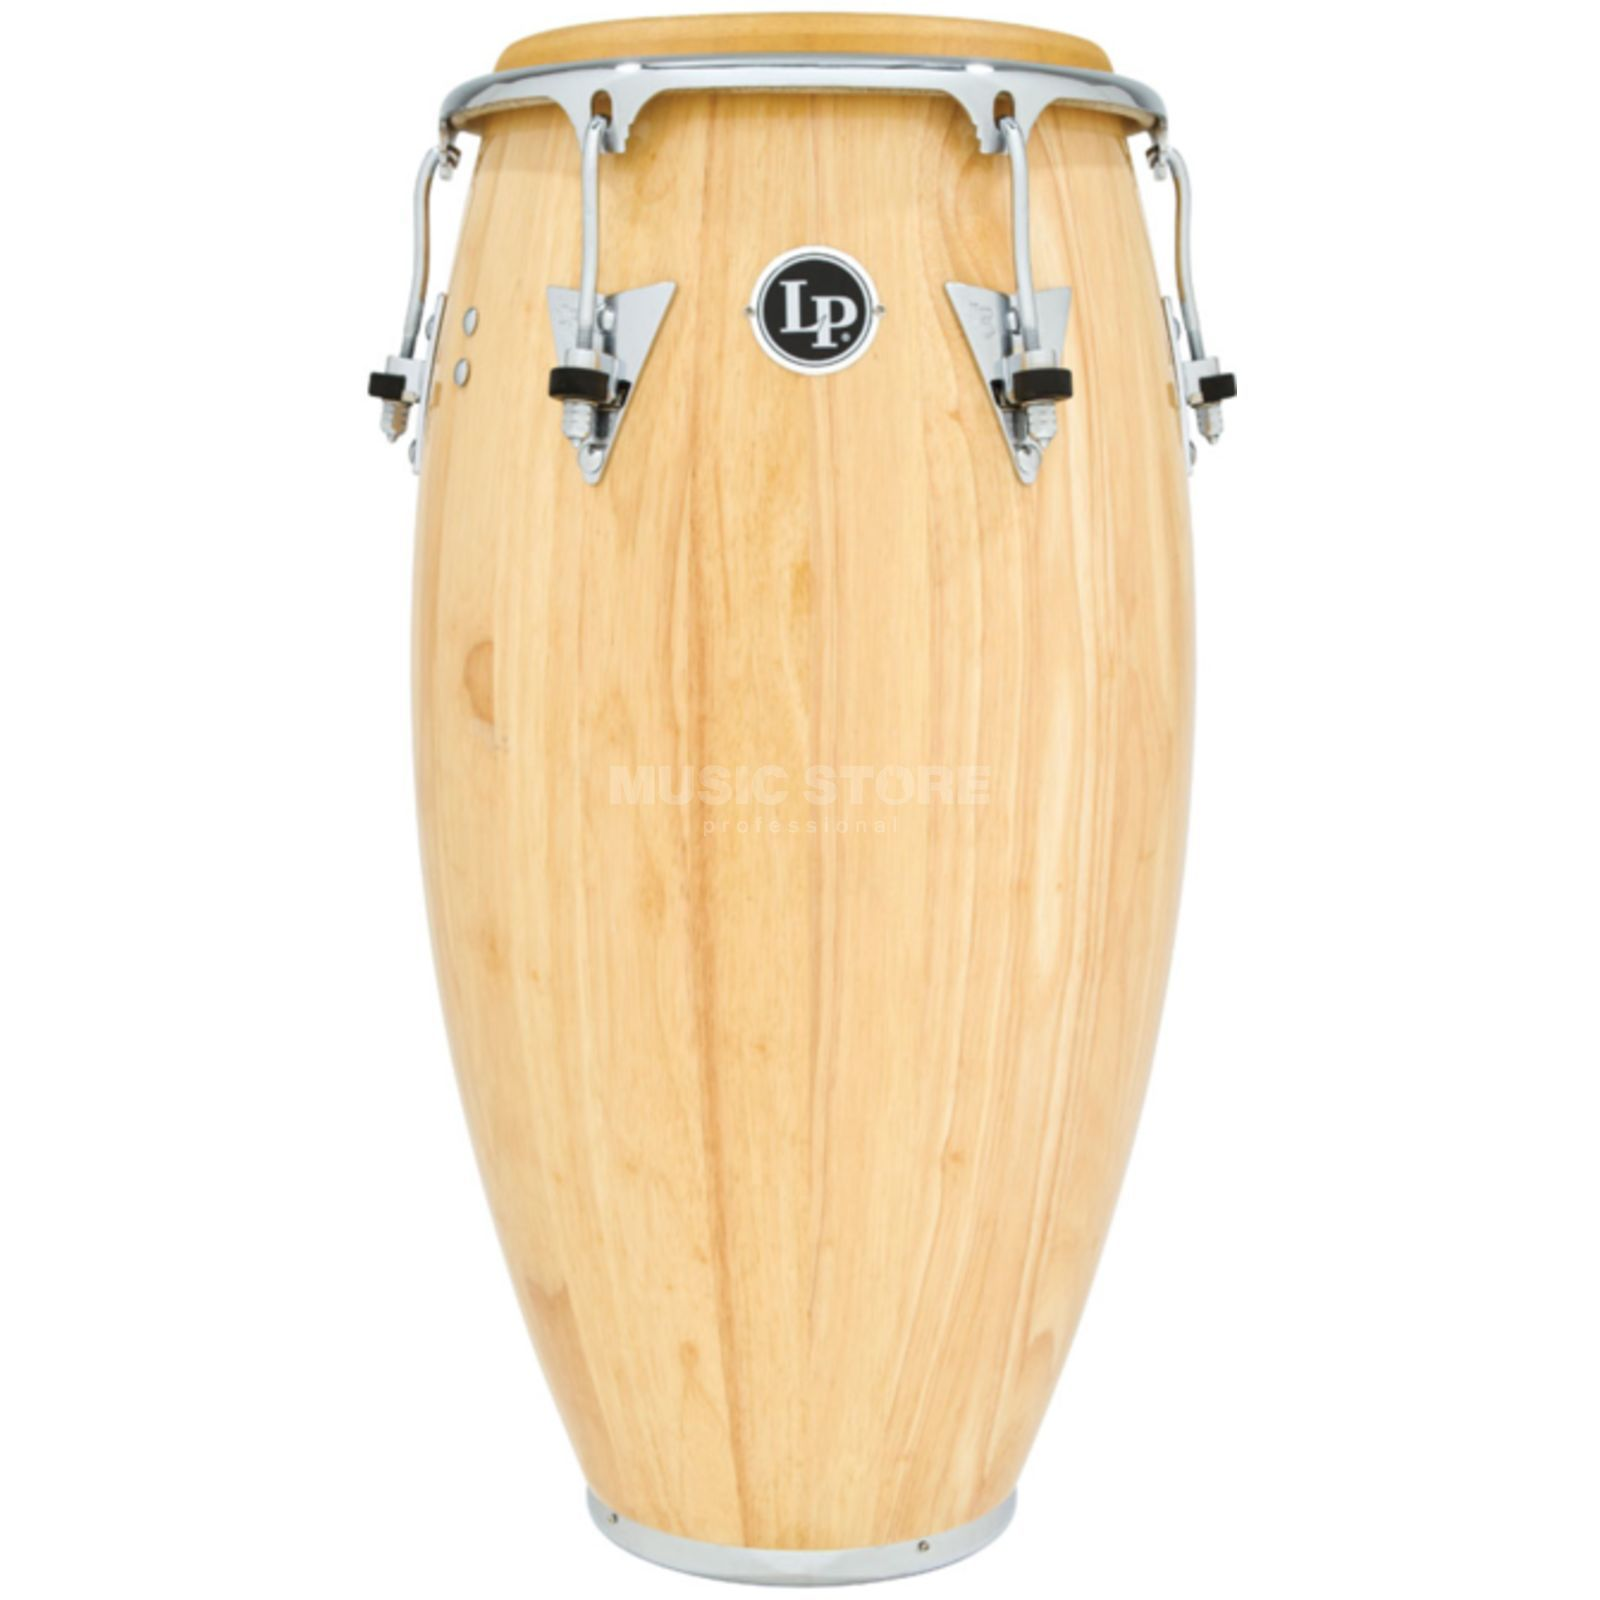 "Latin Percussion Classic Conga LP559X-AWC 11 3/4"", Natural Изображение товара"